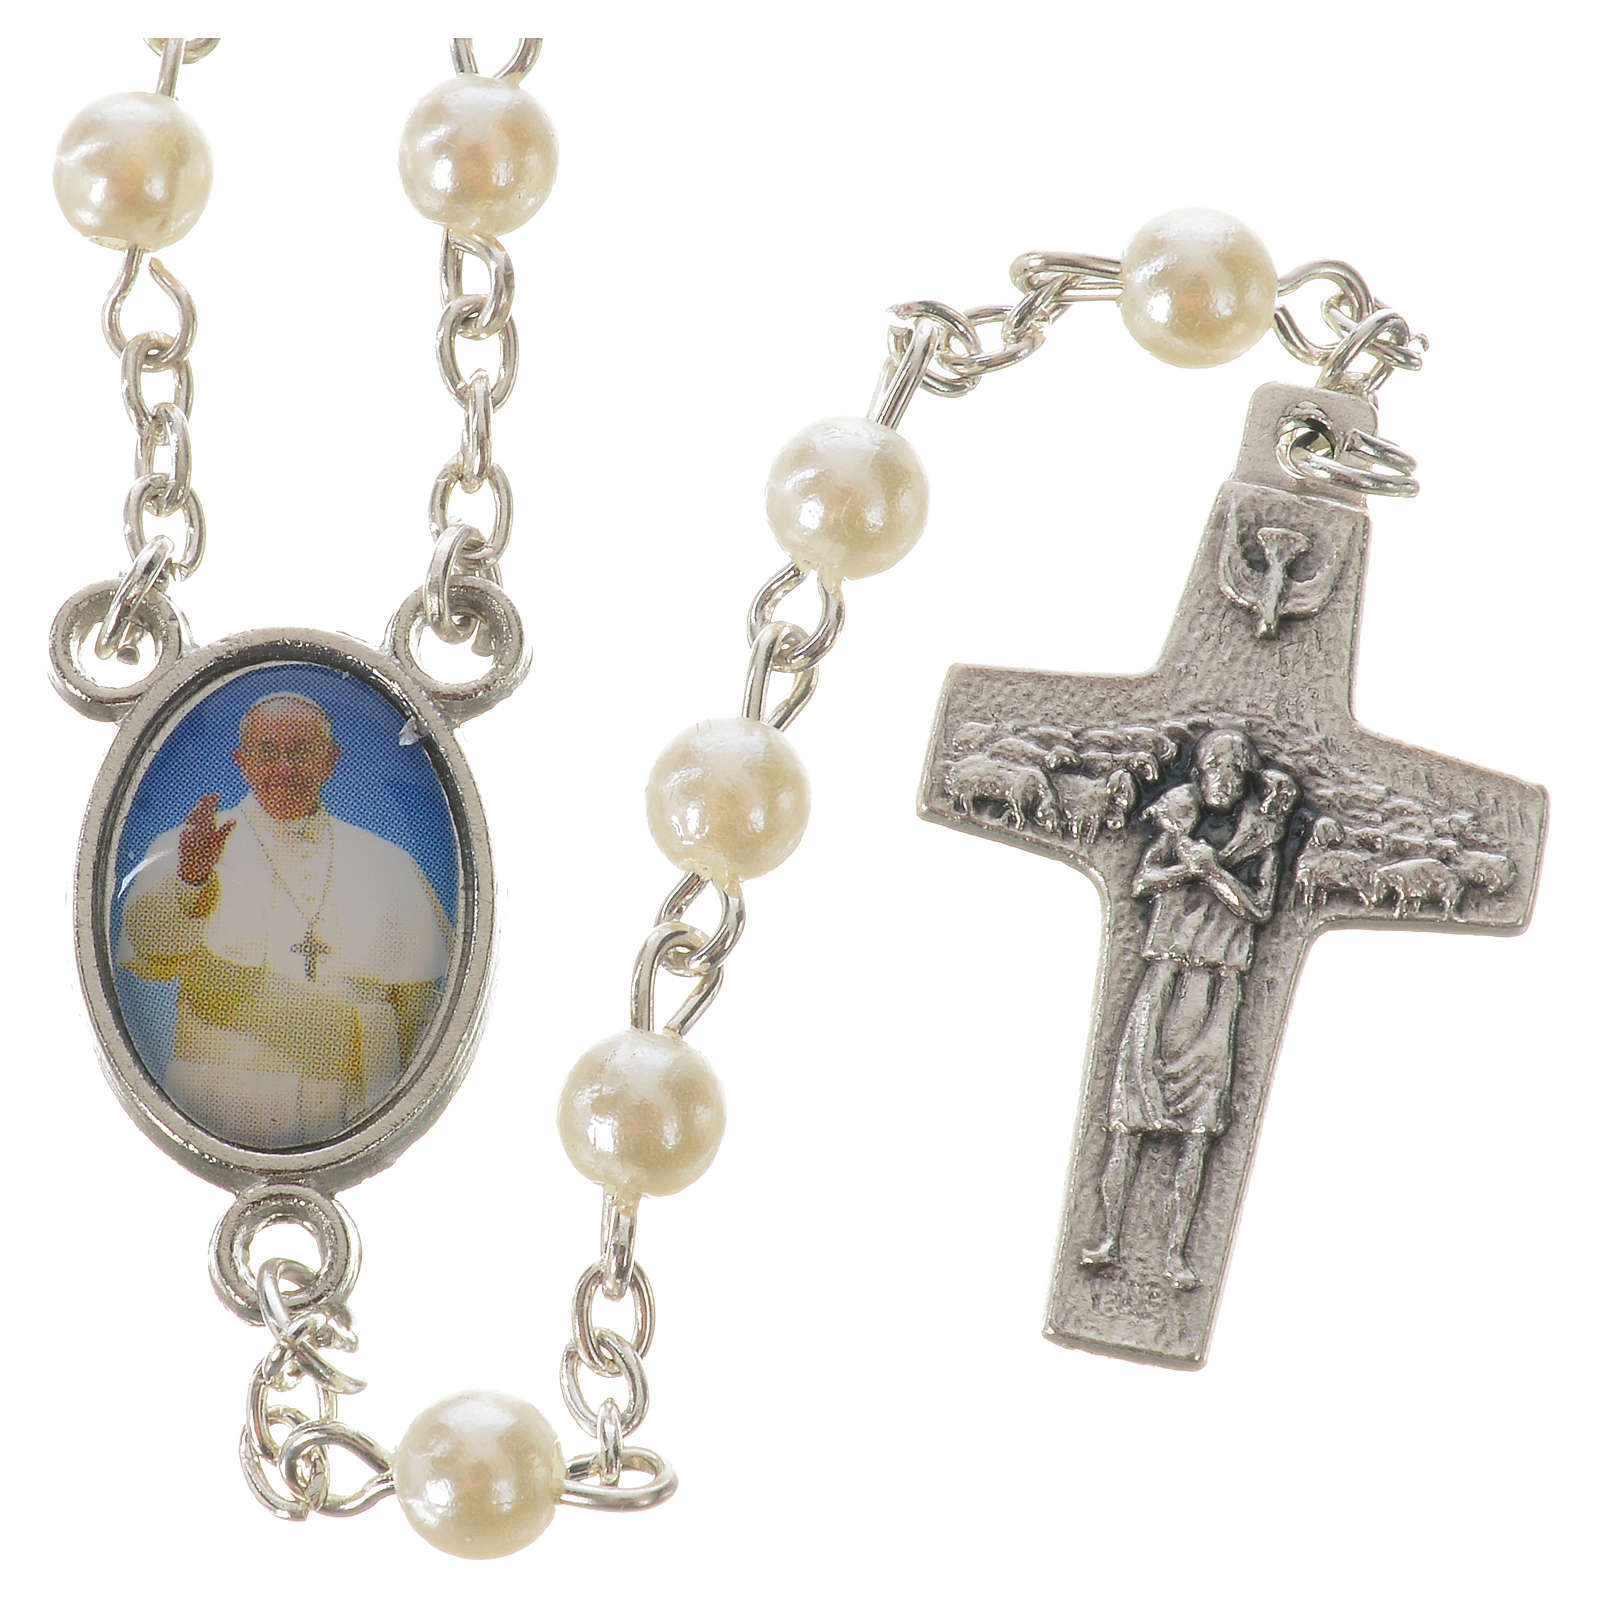 Rosary with Pope Francis, peal-like 5mm beads 4